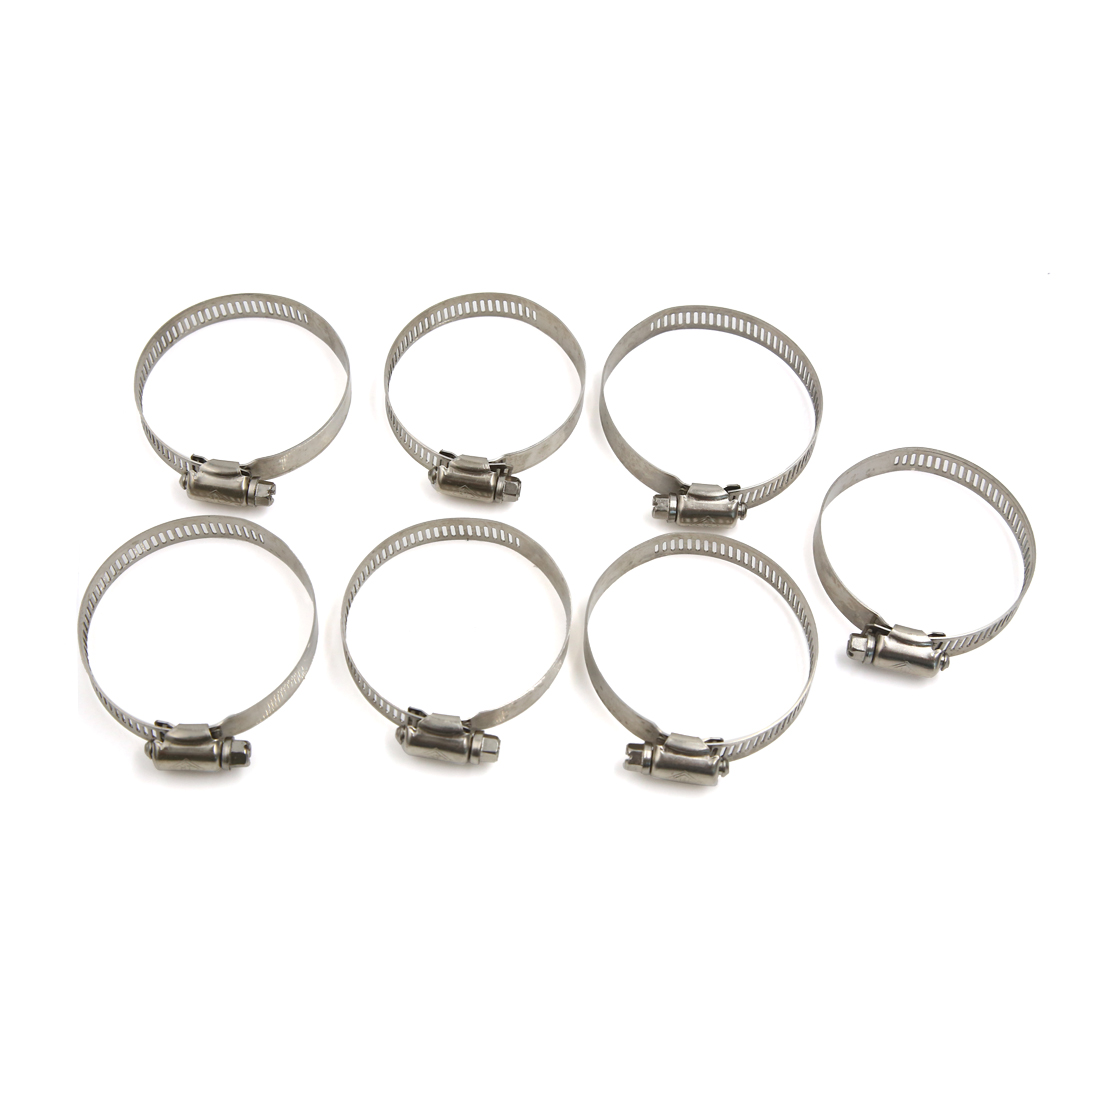 7Pcs Metal Adjustable Hose Clip Clamps Pipe Tube Tight Click 40-64mm for Car